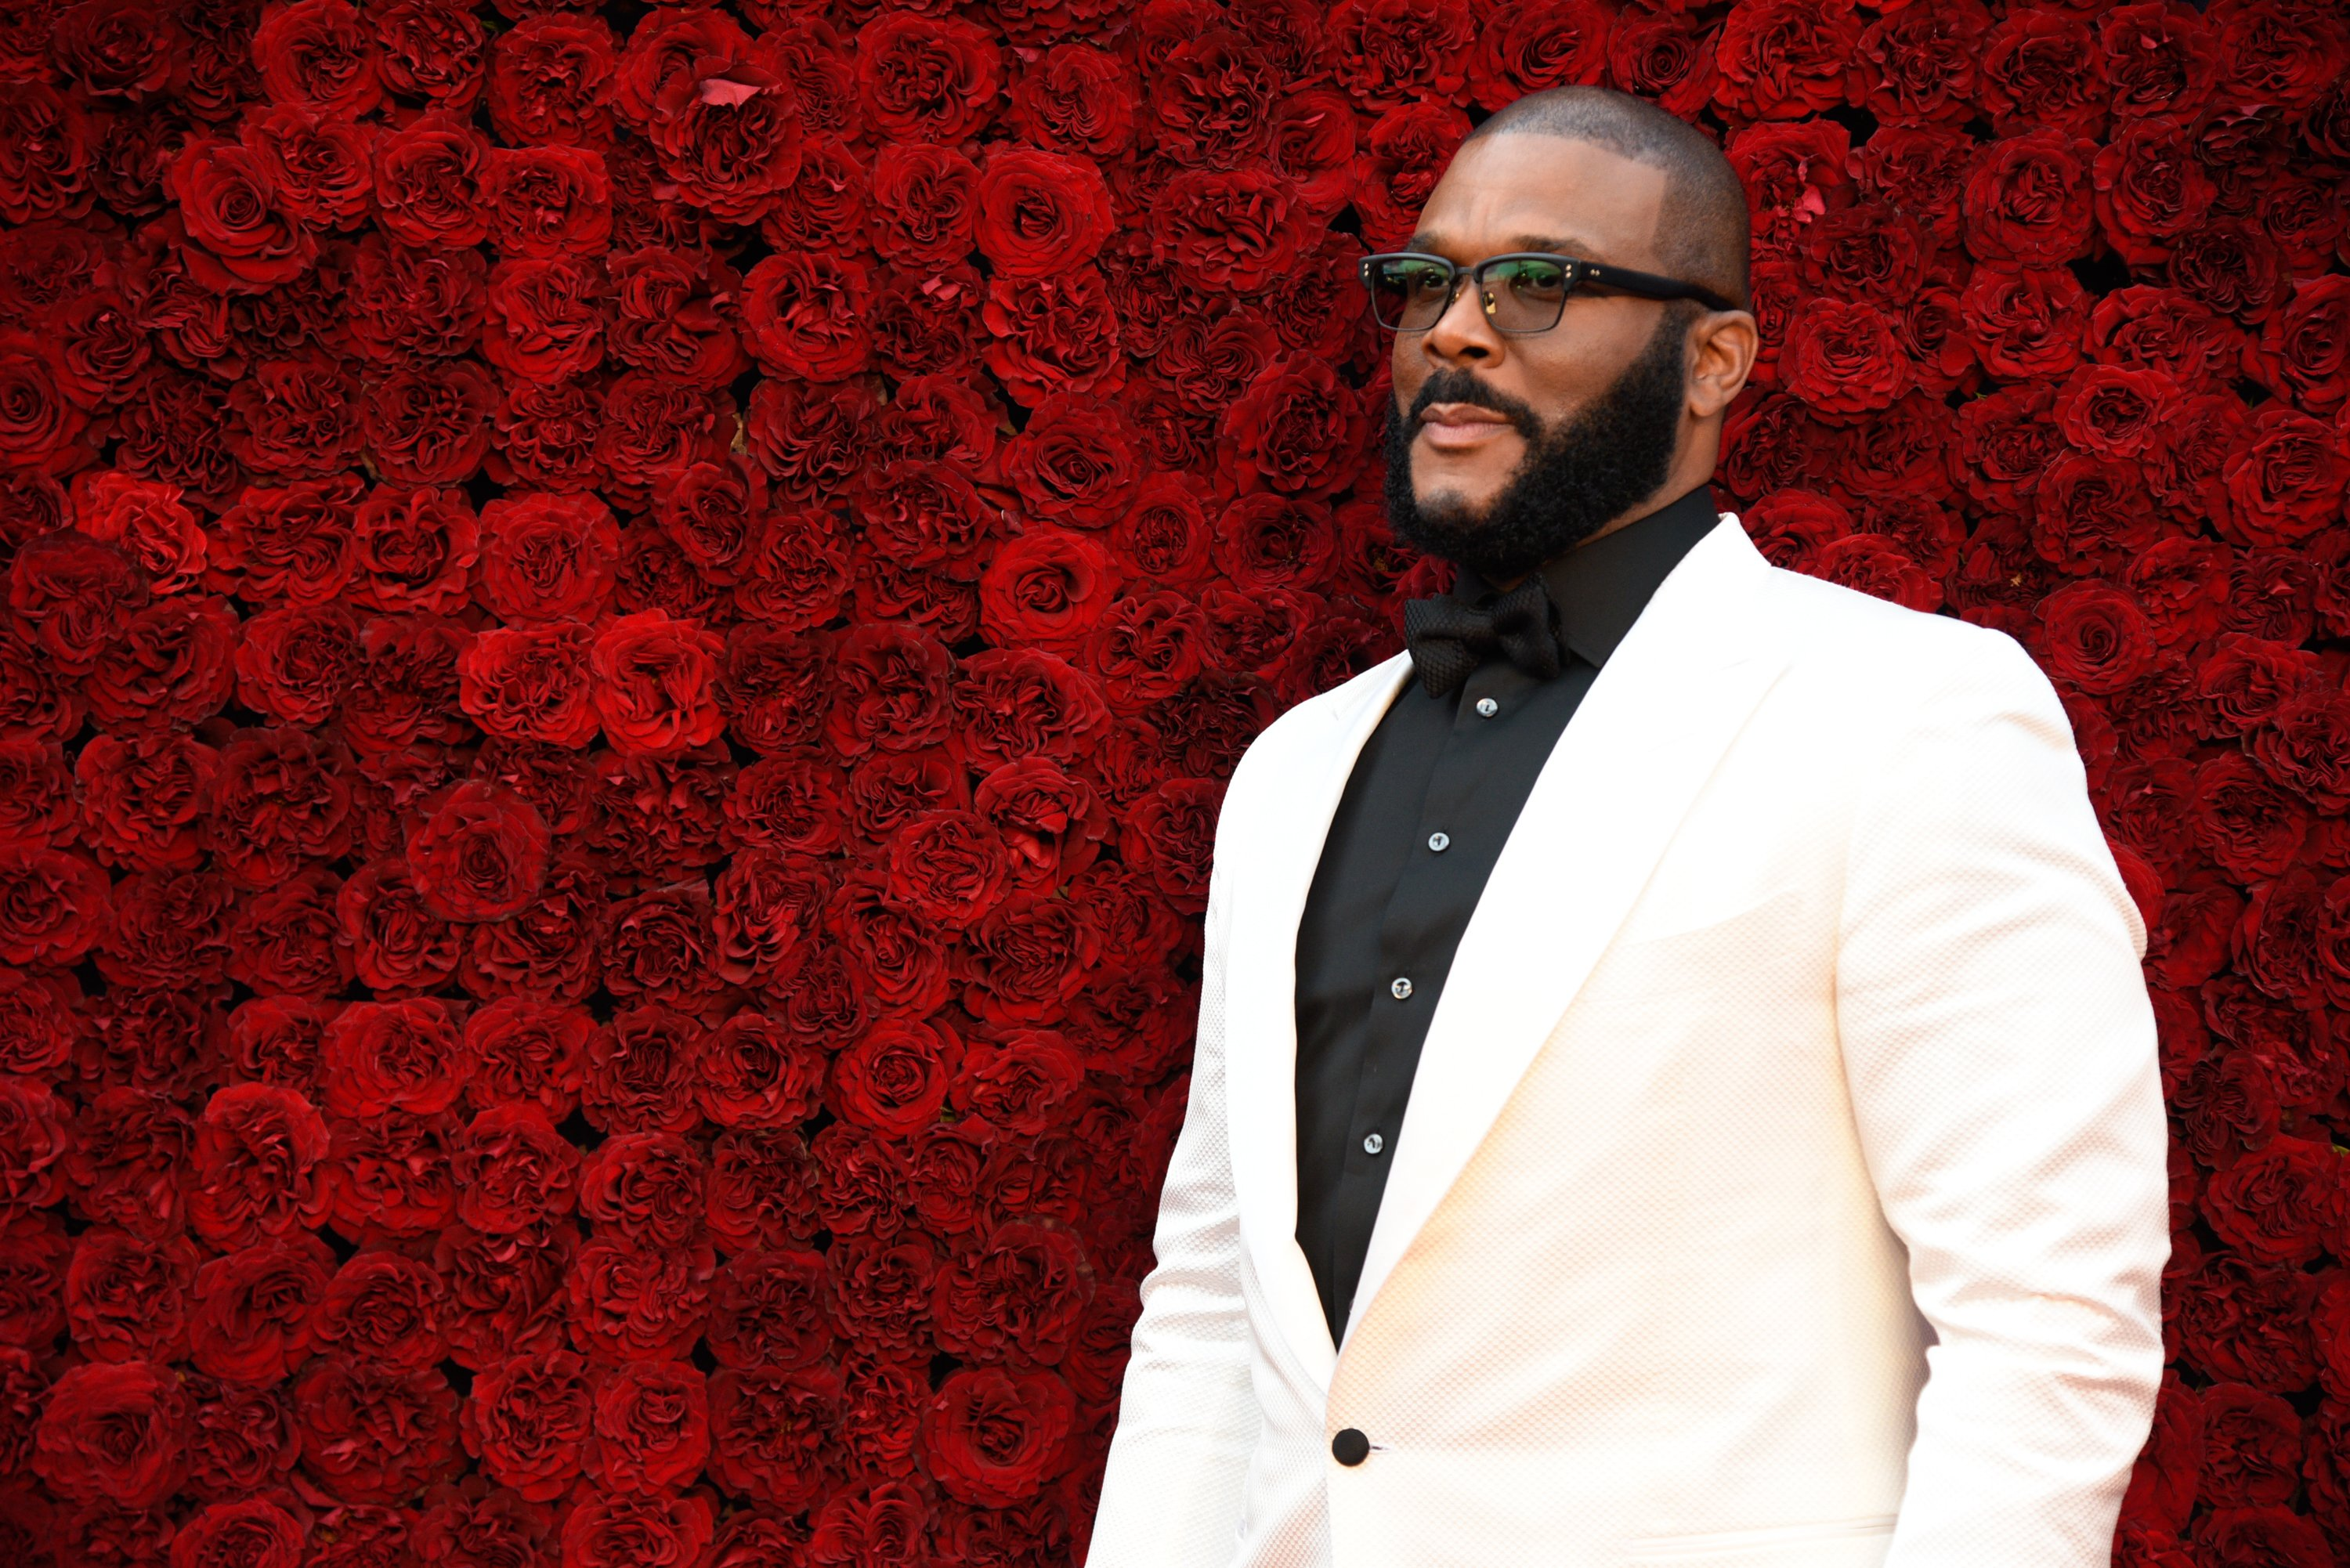 Tyler Perry attends Tyler Perry Studios grand opening gala at Tyler Perry Studios on October 05, 2019 in Atlanta, Georgia | Photo: GettyImages